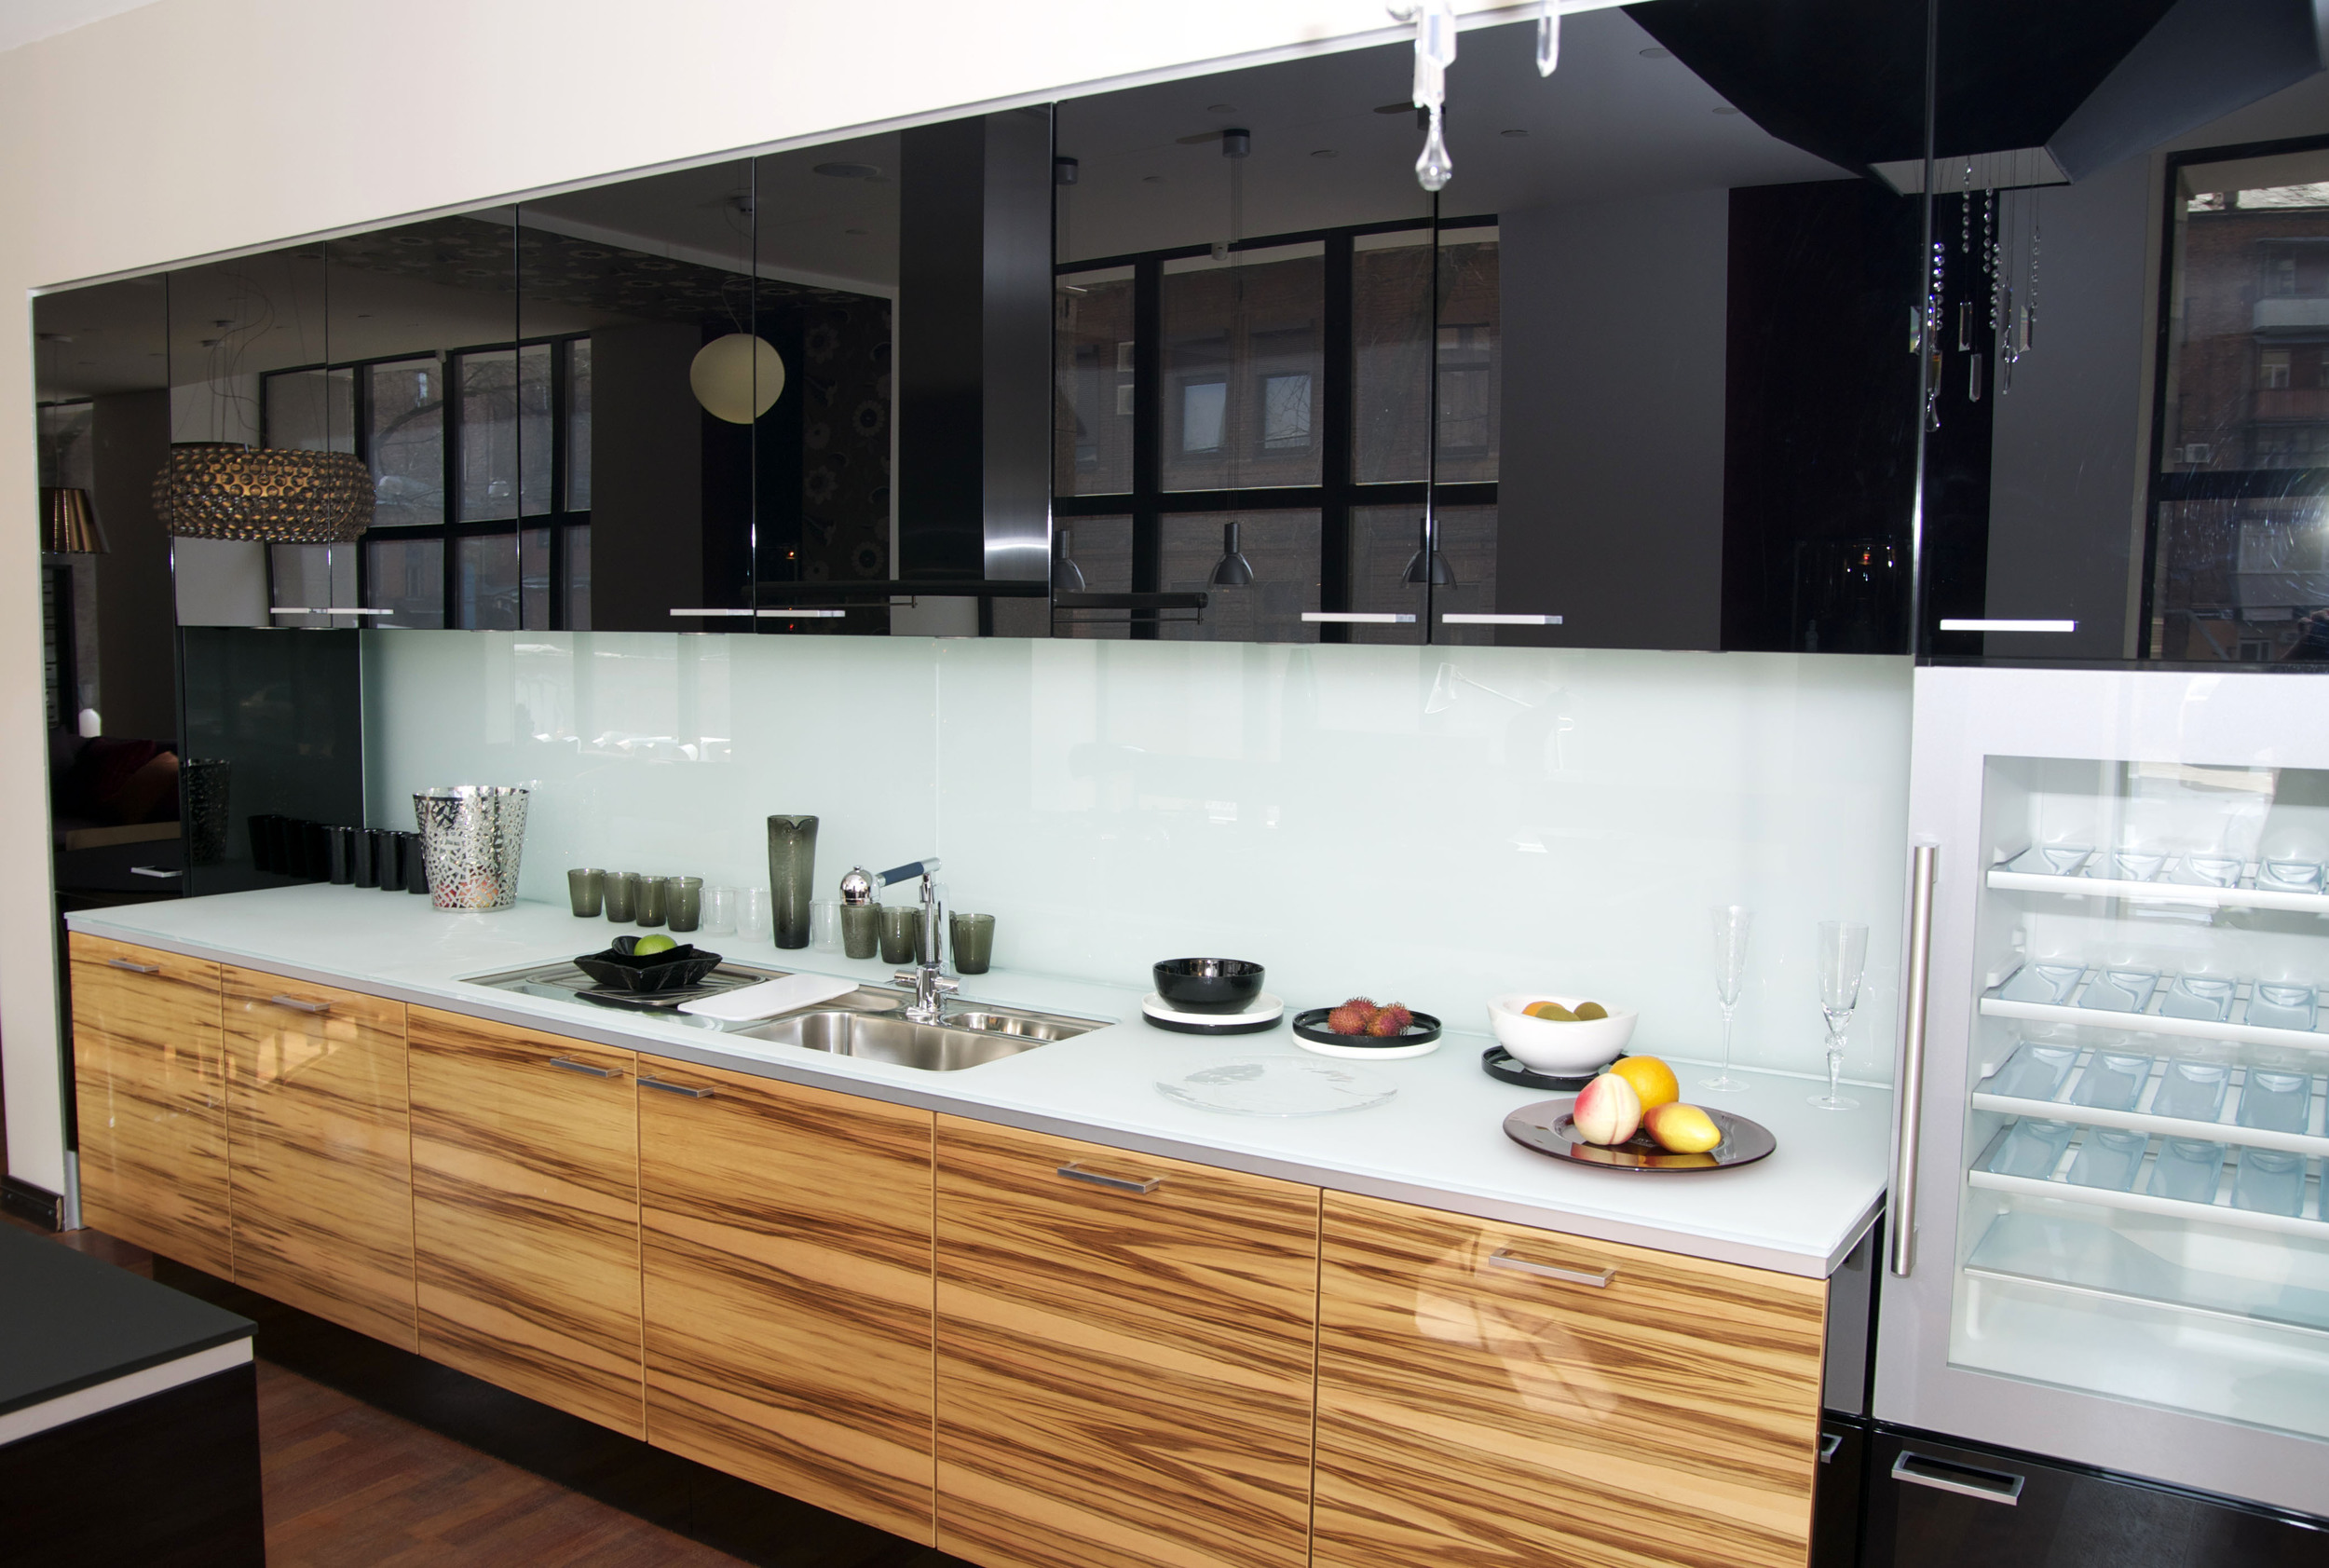 cts-cleaning-solutions-kitchen-3